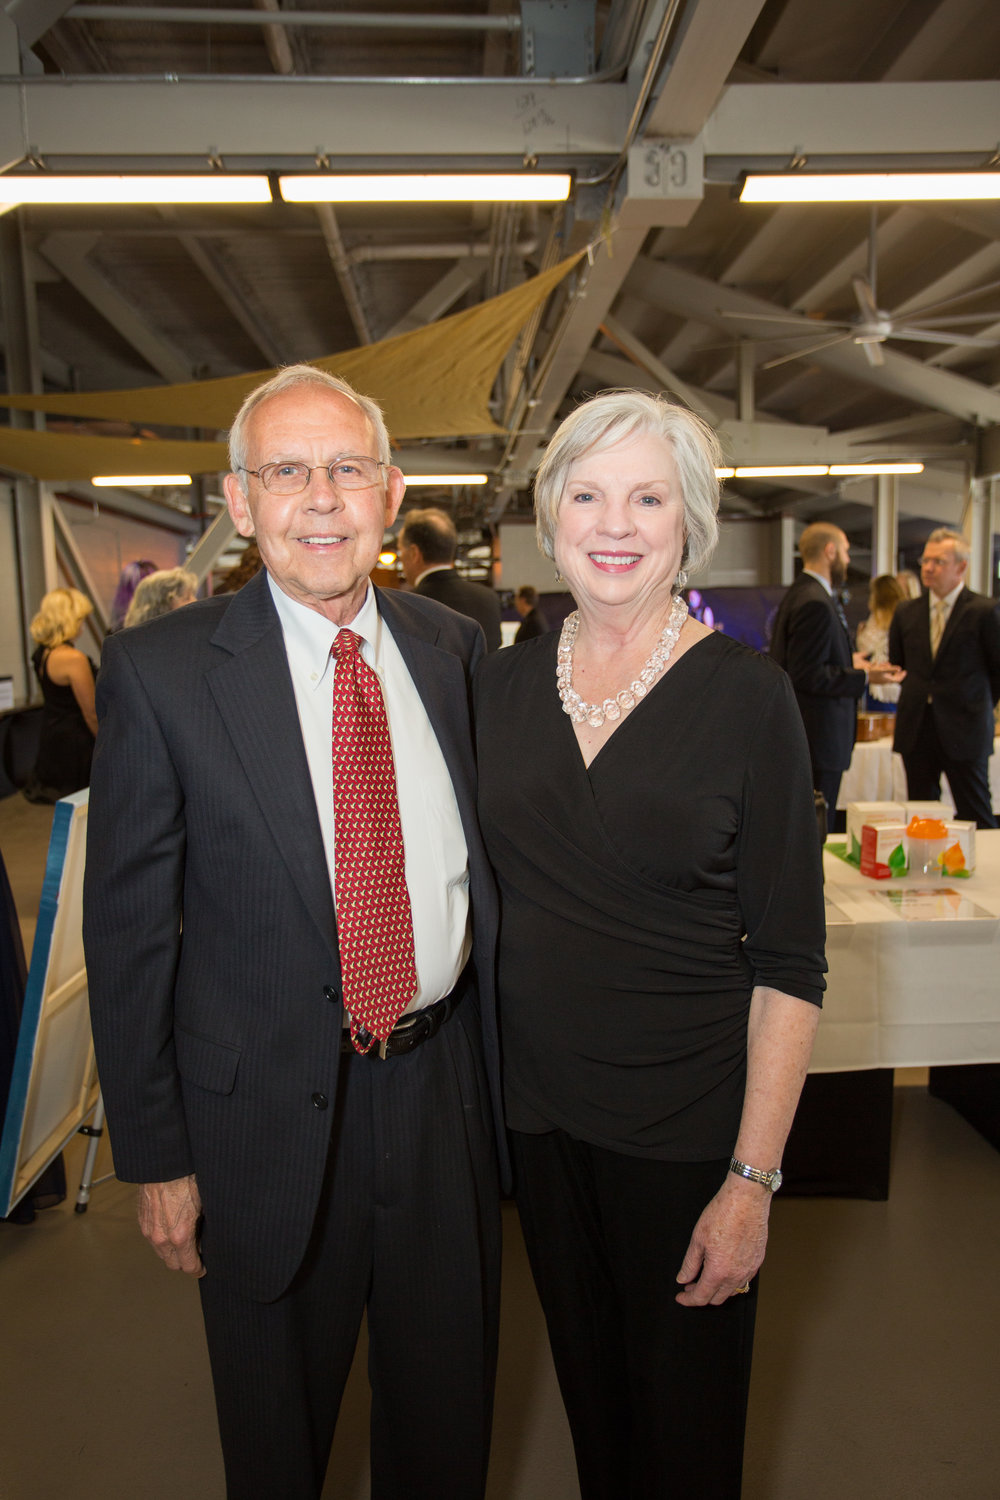 CCS Grandparents and gala sponsors Ken and Jean Boutwell